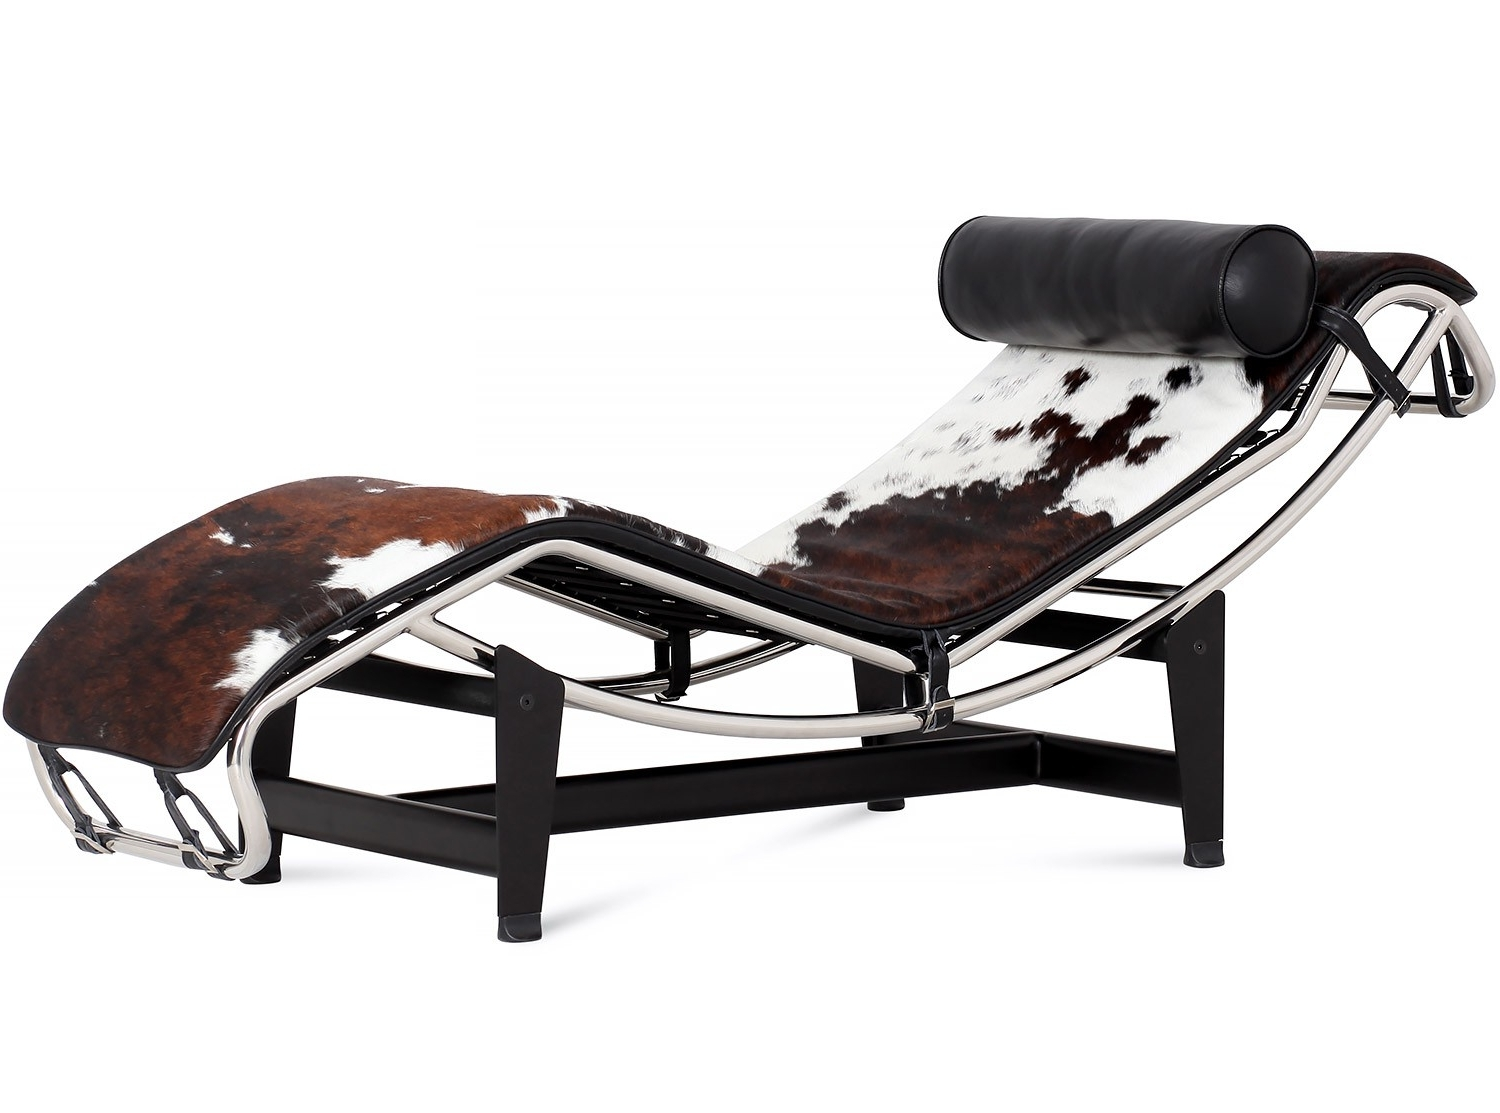 Le Corbusier Lc4 Chaise Longue Cowhide (Platinum Replica) With Regard To Most Recently Released Le Corbusier Chaises (View 11 of 15)